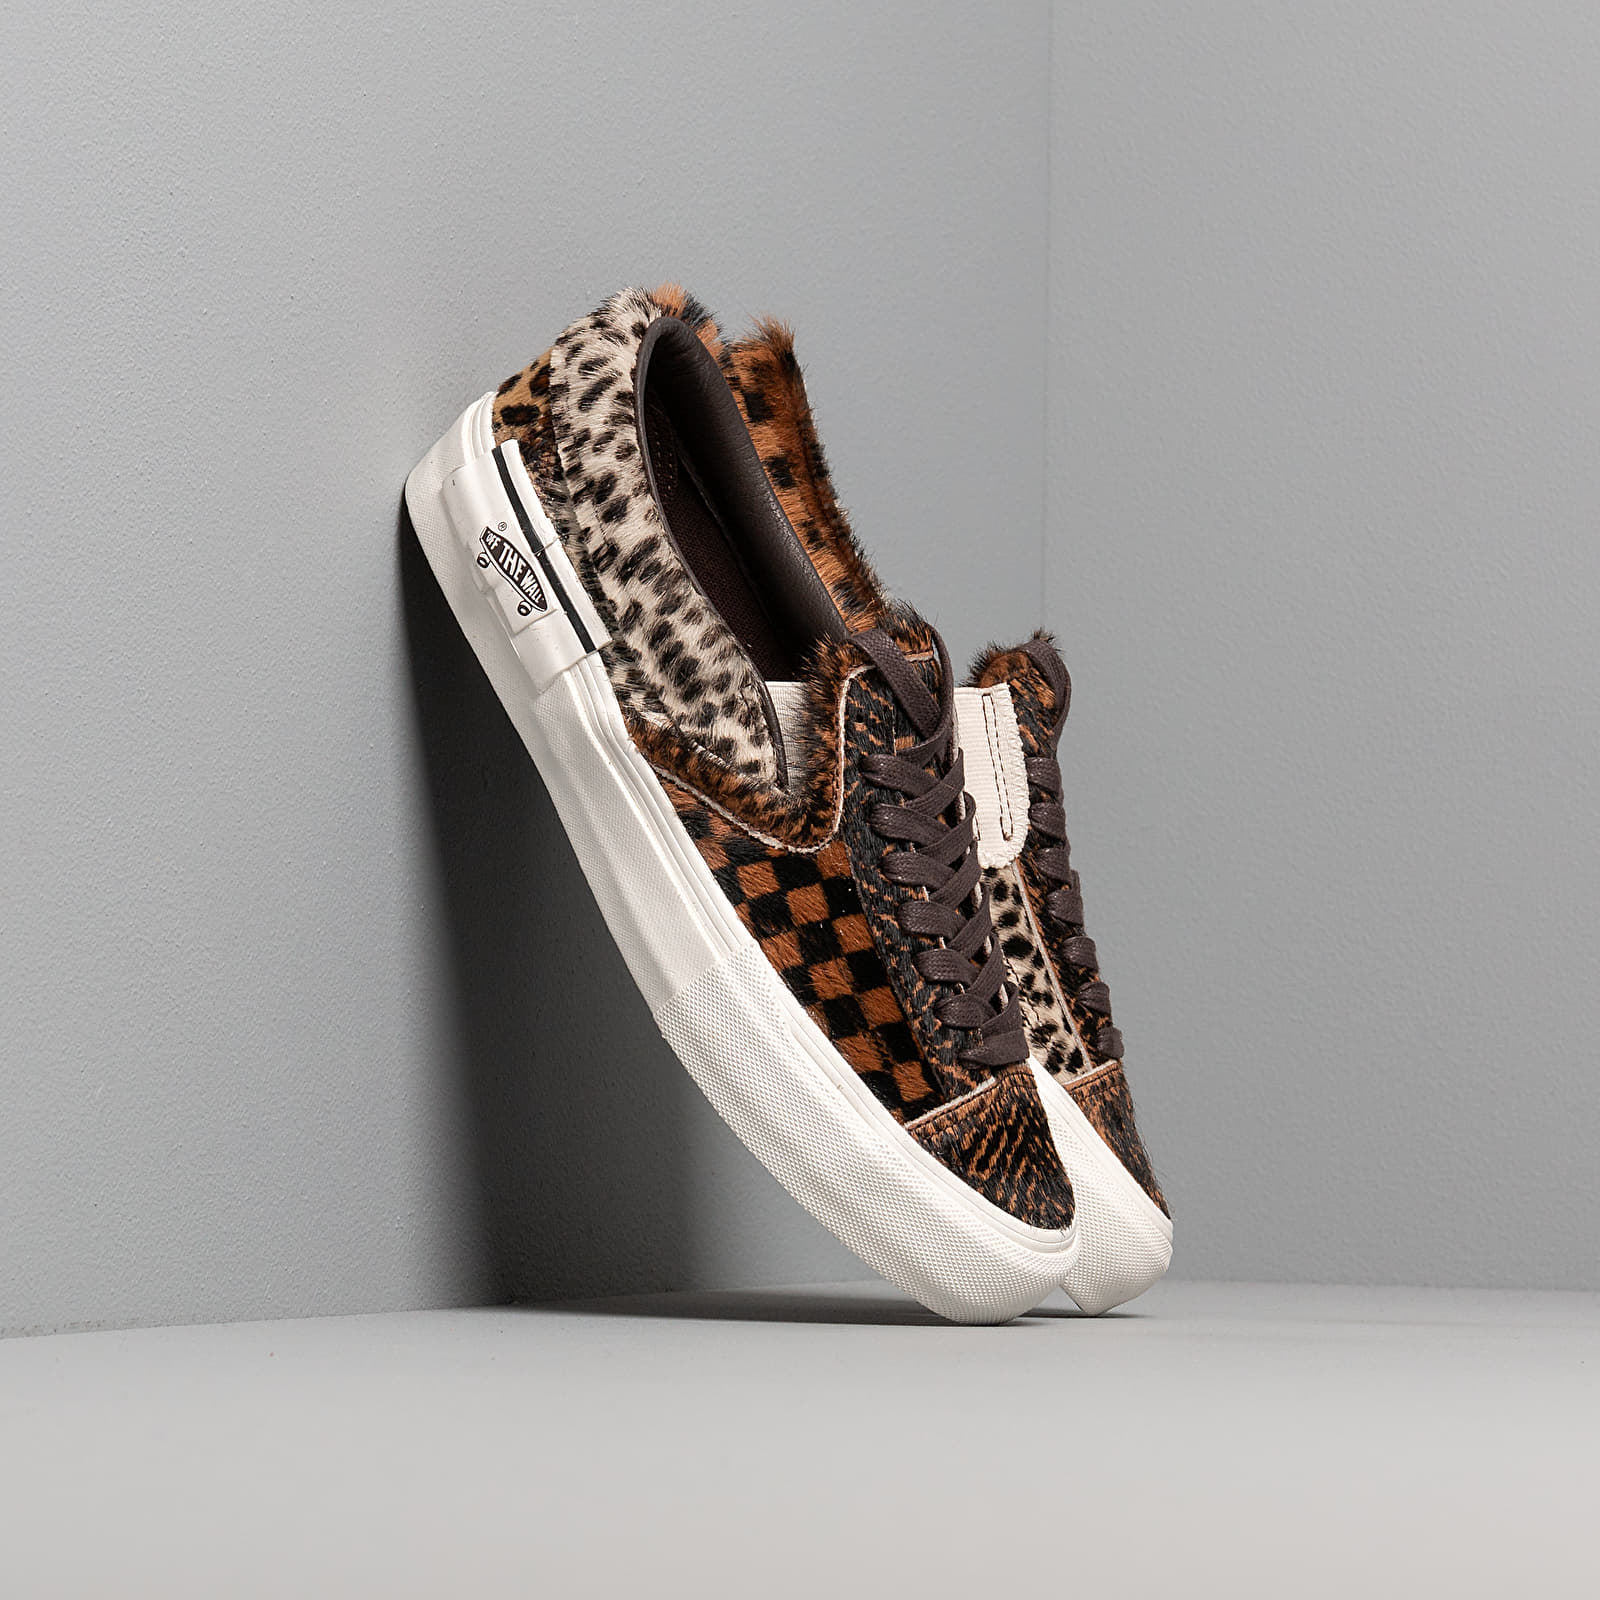 Vans Slip-On Cap LX (Pony)